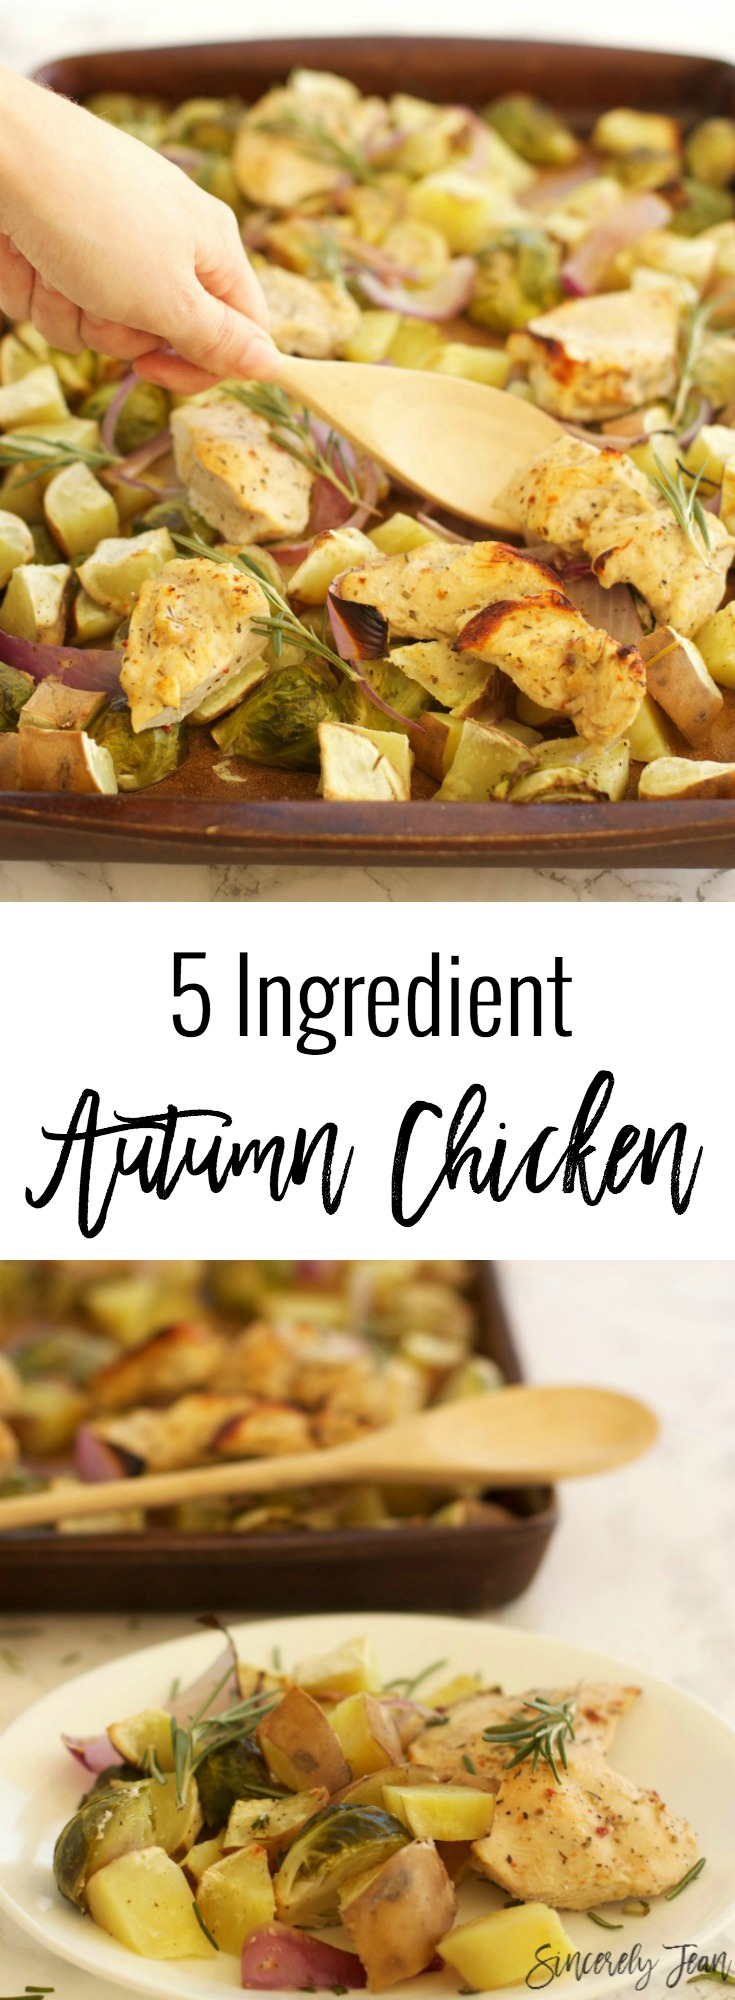 SIncerelyJean.com brings you Easy Fall Chicken with only 5 ingredients